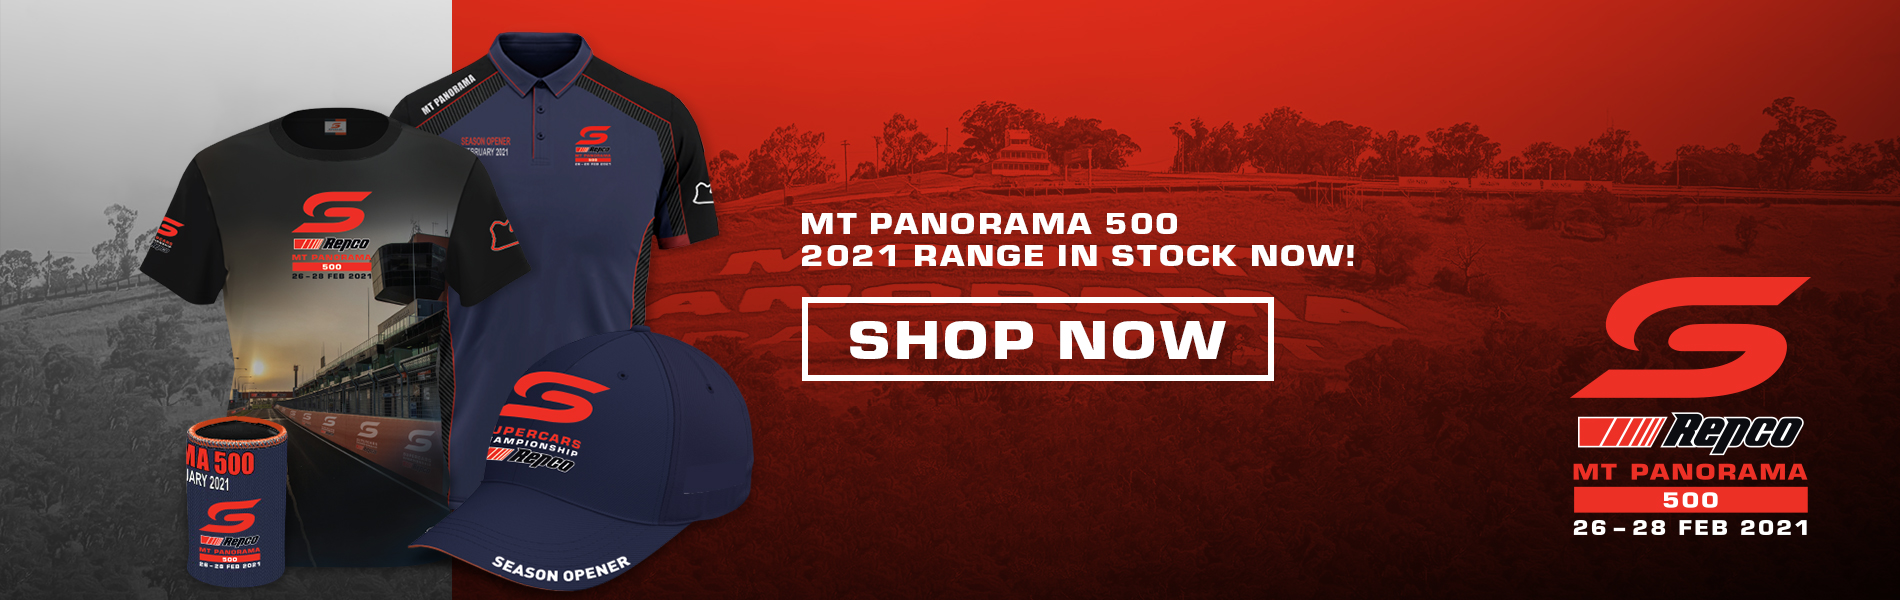 Mount-Panorama-500-homepage-banner-3rd